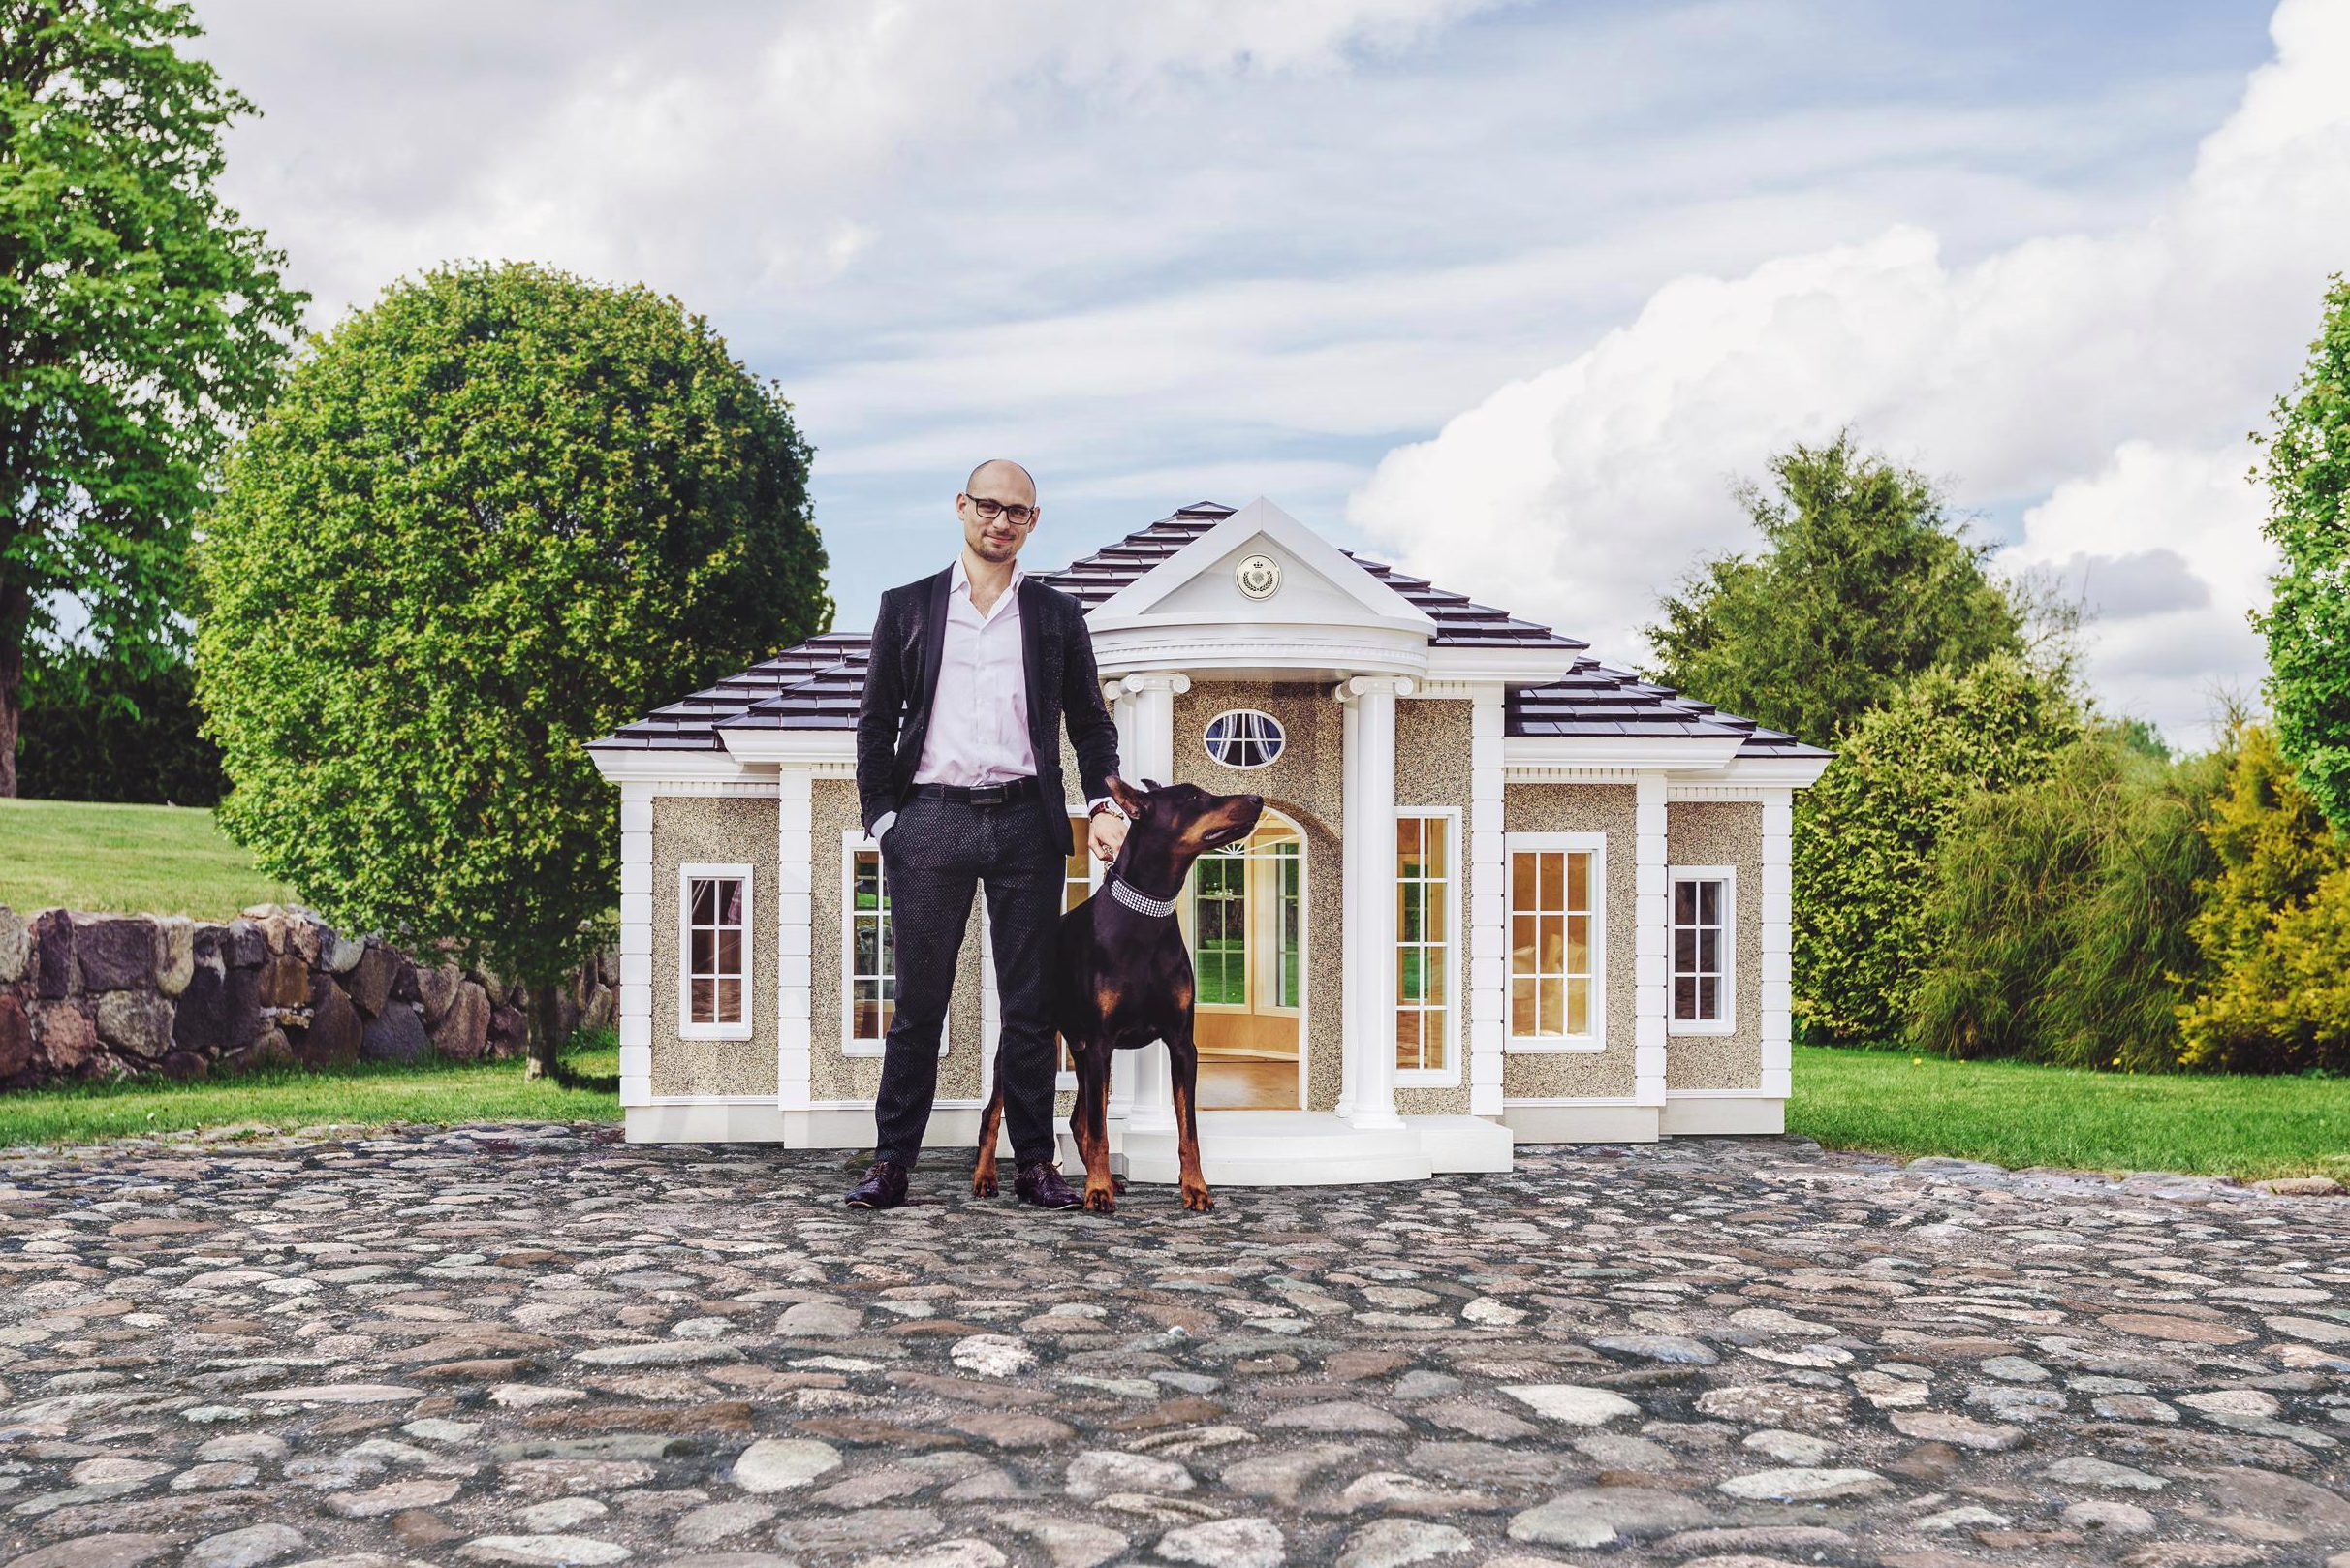 Now you can buy the 'world's most luxurious dog kennels' that cost £170K and have air con and treat dispensers